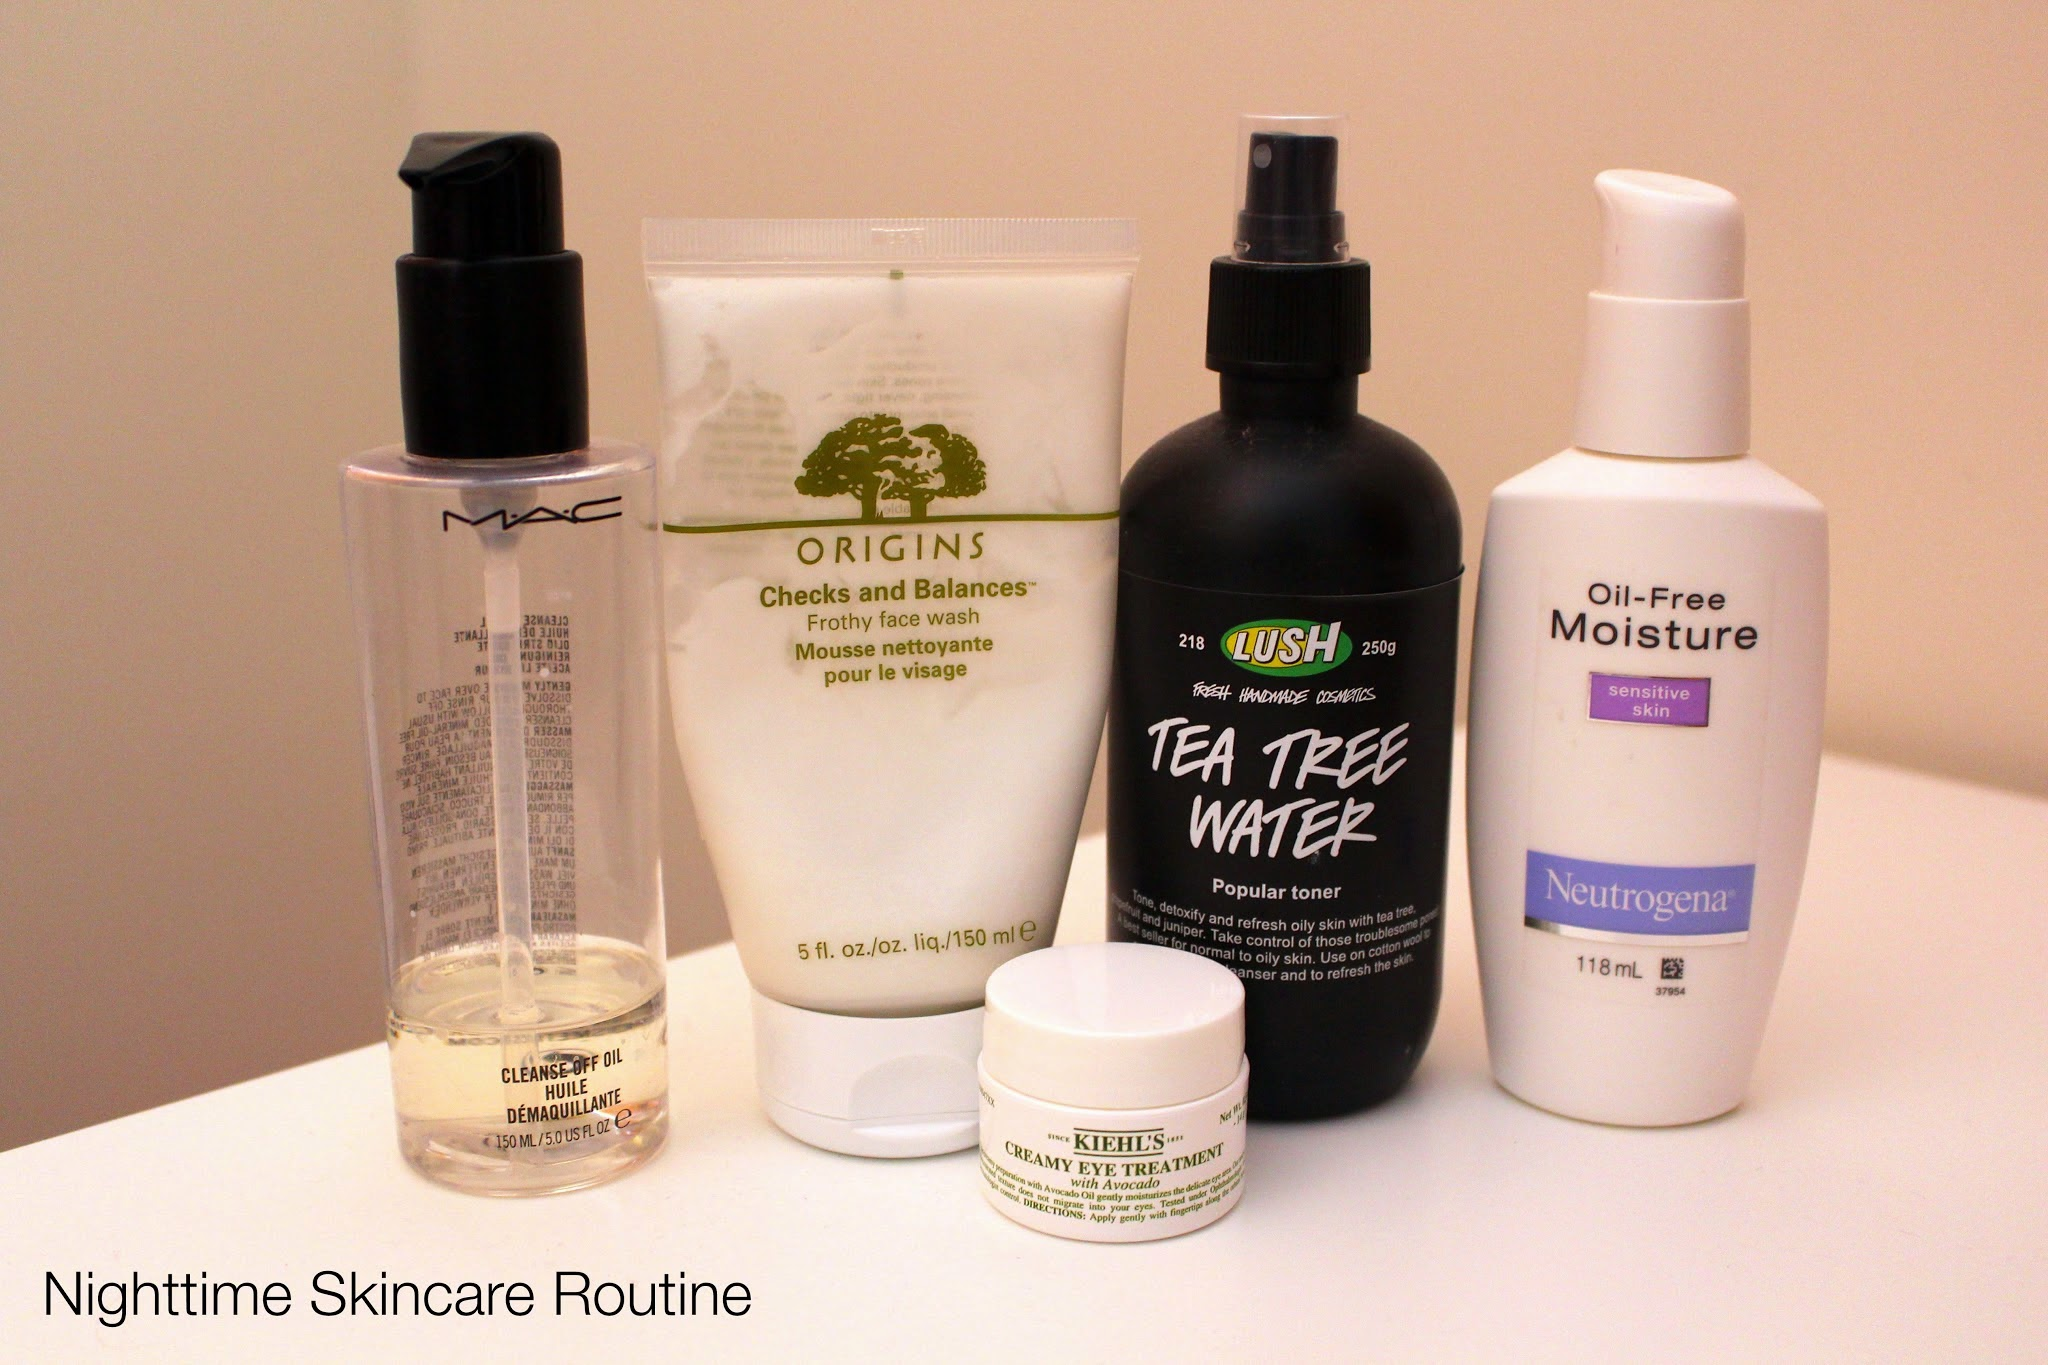 Updated morning and nighttime skincare routine for oily combination skin, skincare routine, oily skin routine, oily combination skincare routine